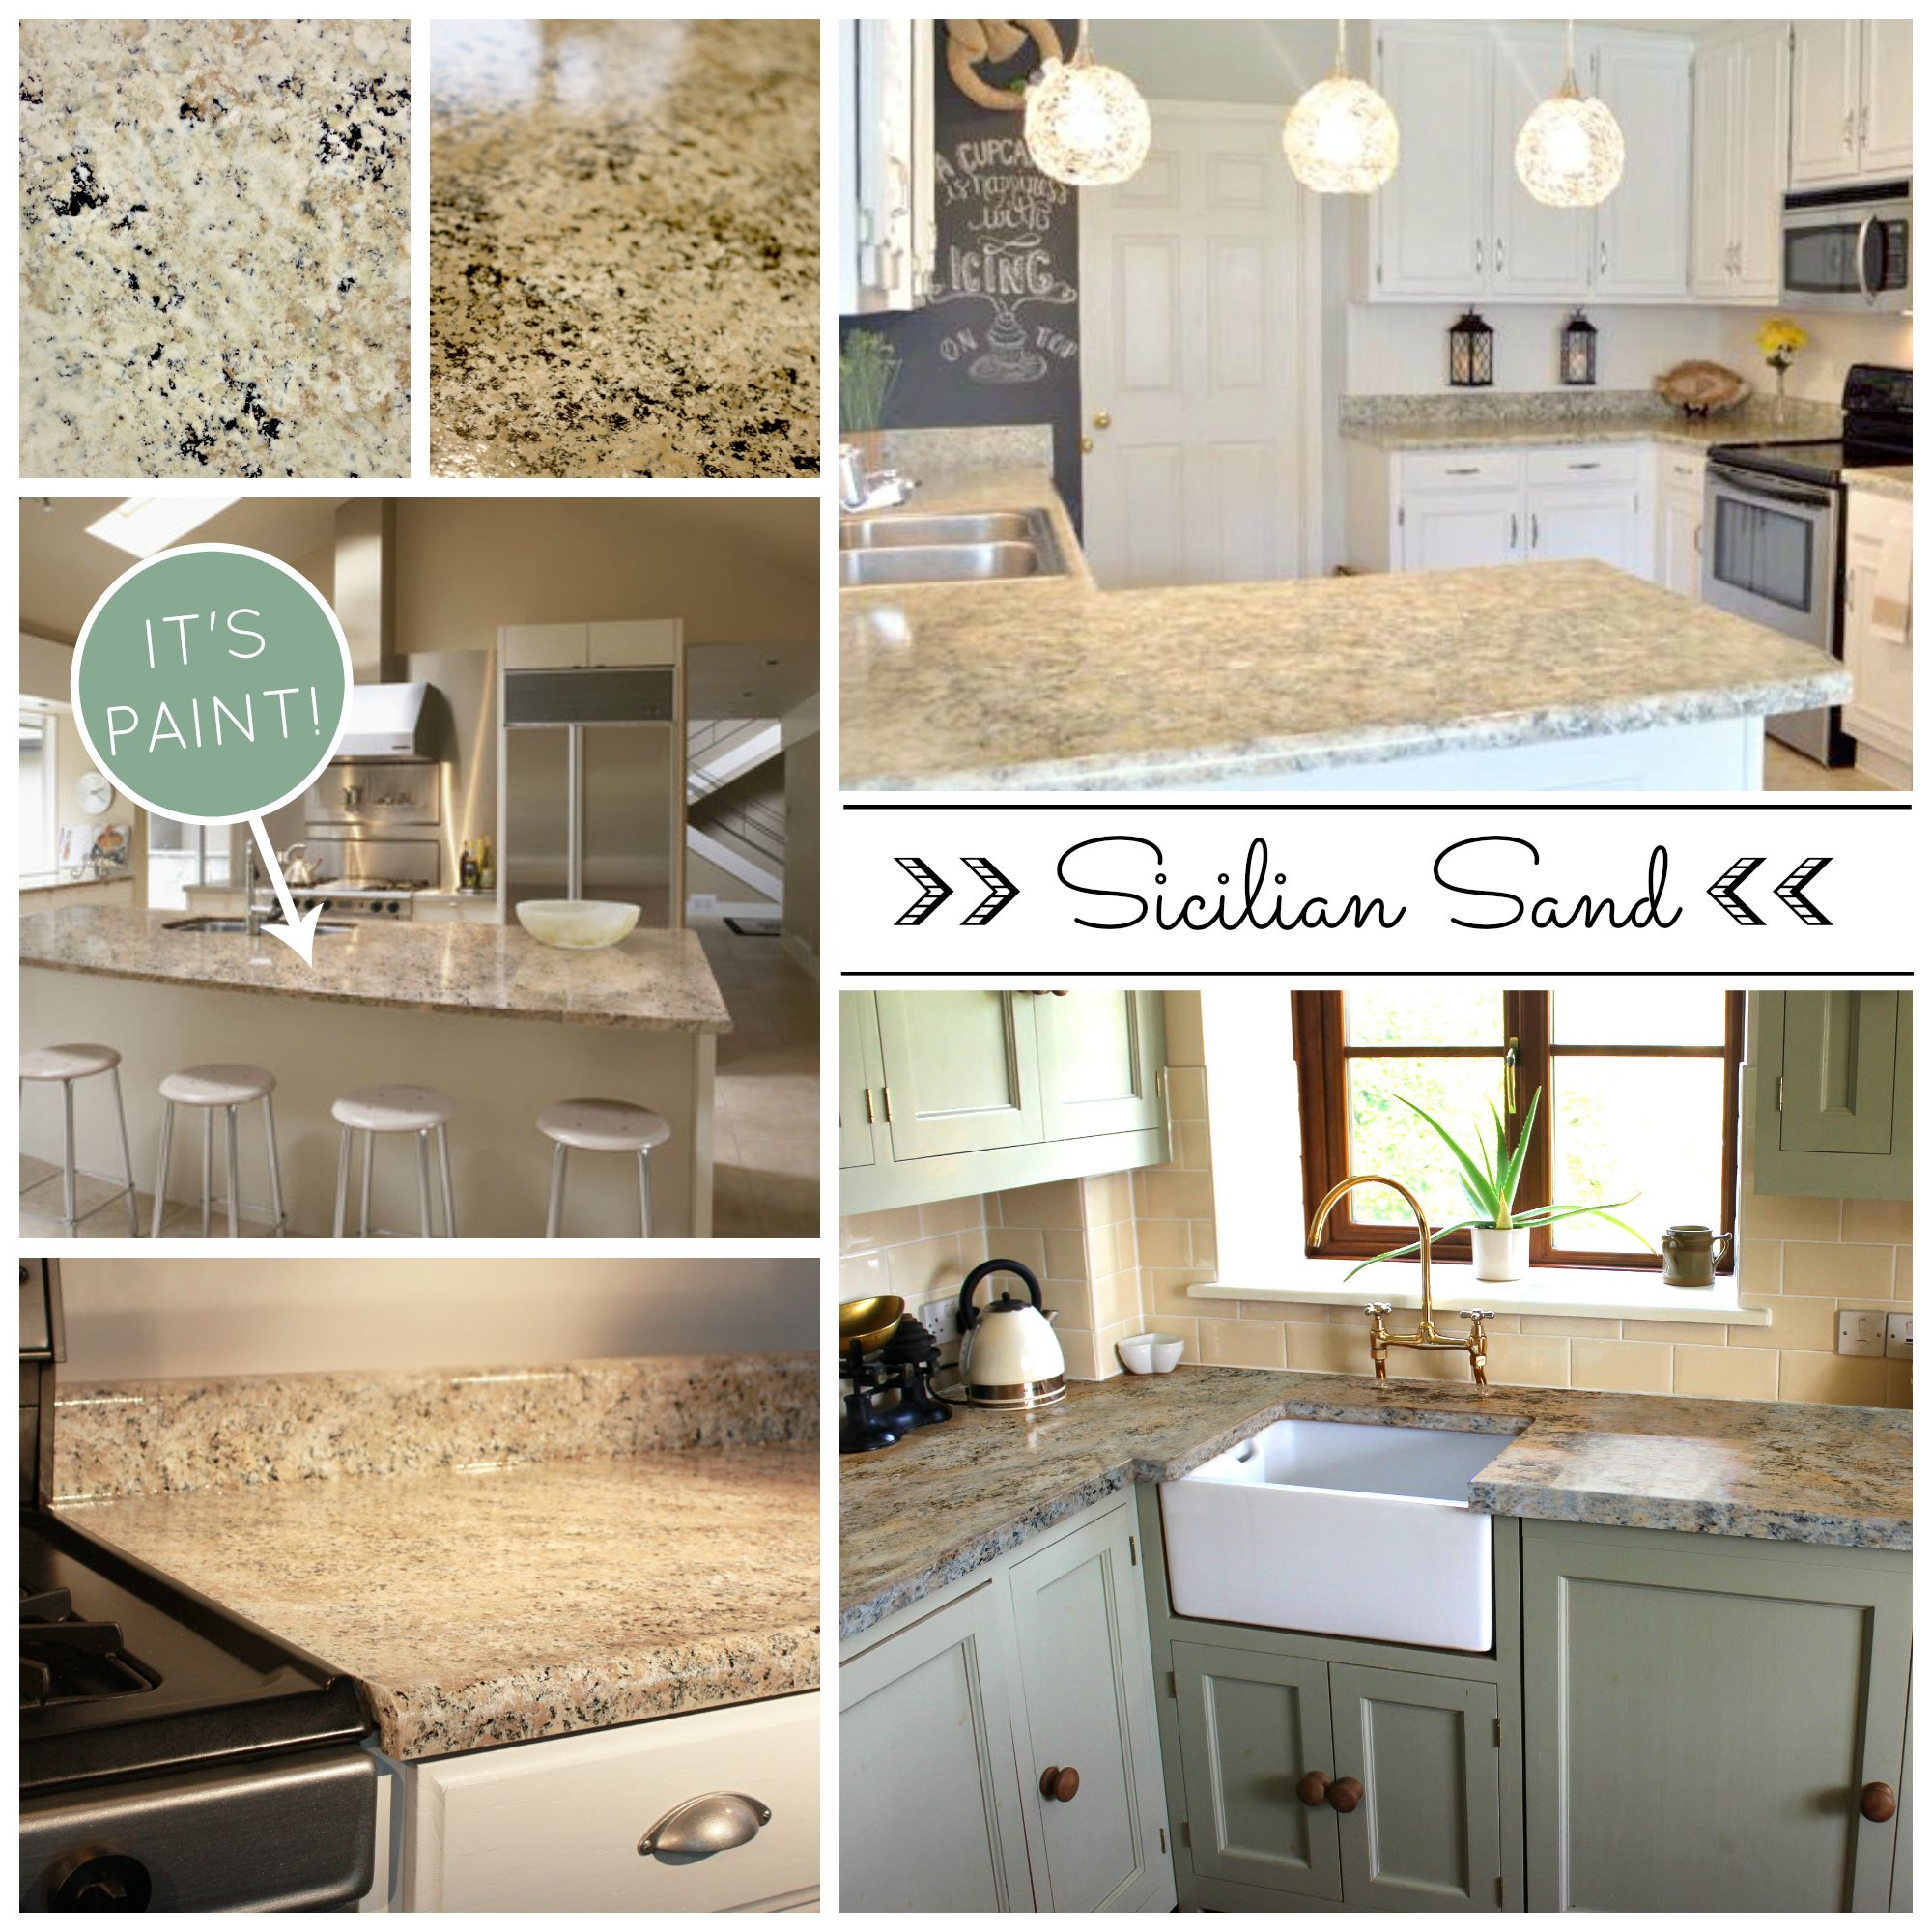 Painting A Kitchen Countertop Beautiful And Affordable Painted Countertops Diy